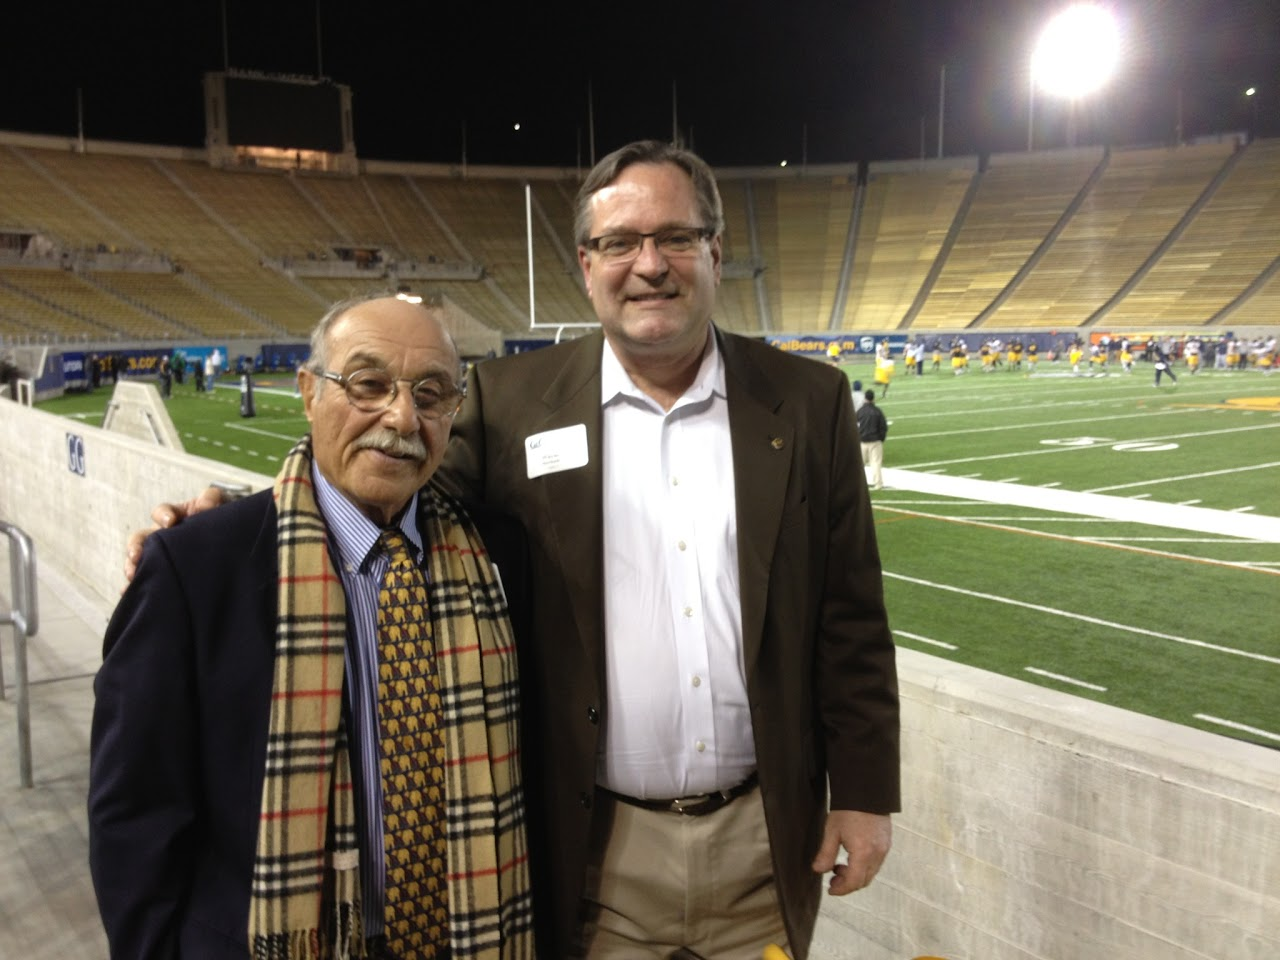 Rodney Friedman and Wayne Rowlands at Cal's Stadium